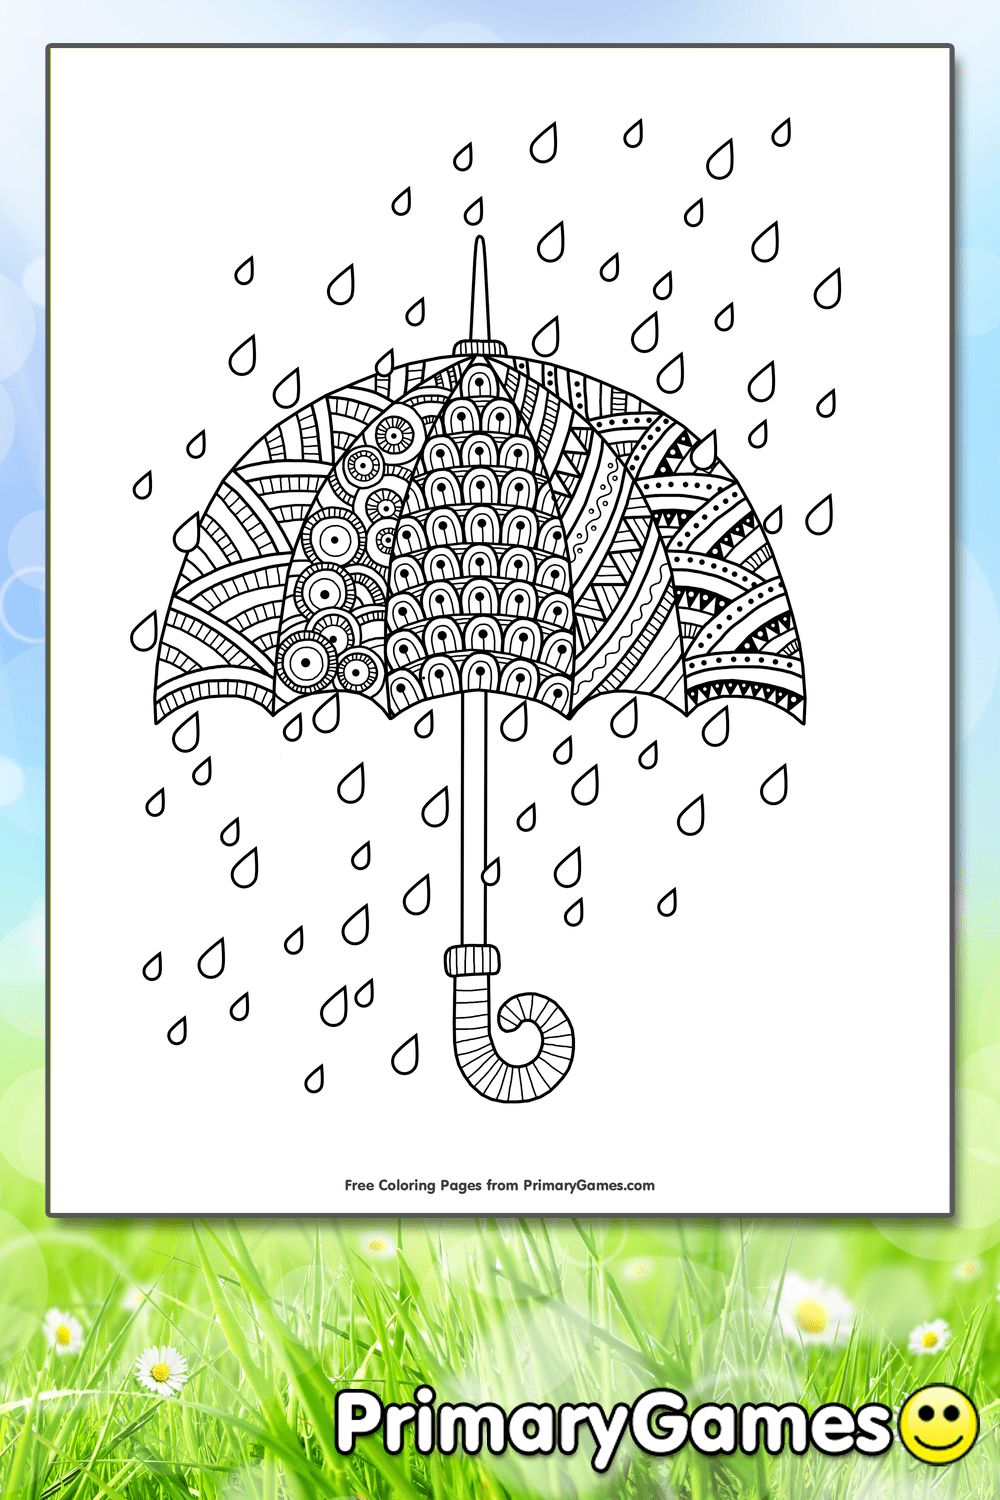 Rain Drops With Umbrella Coloring Page Printable Spring